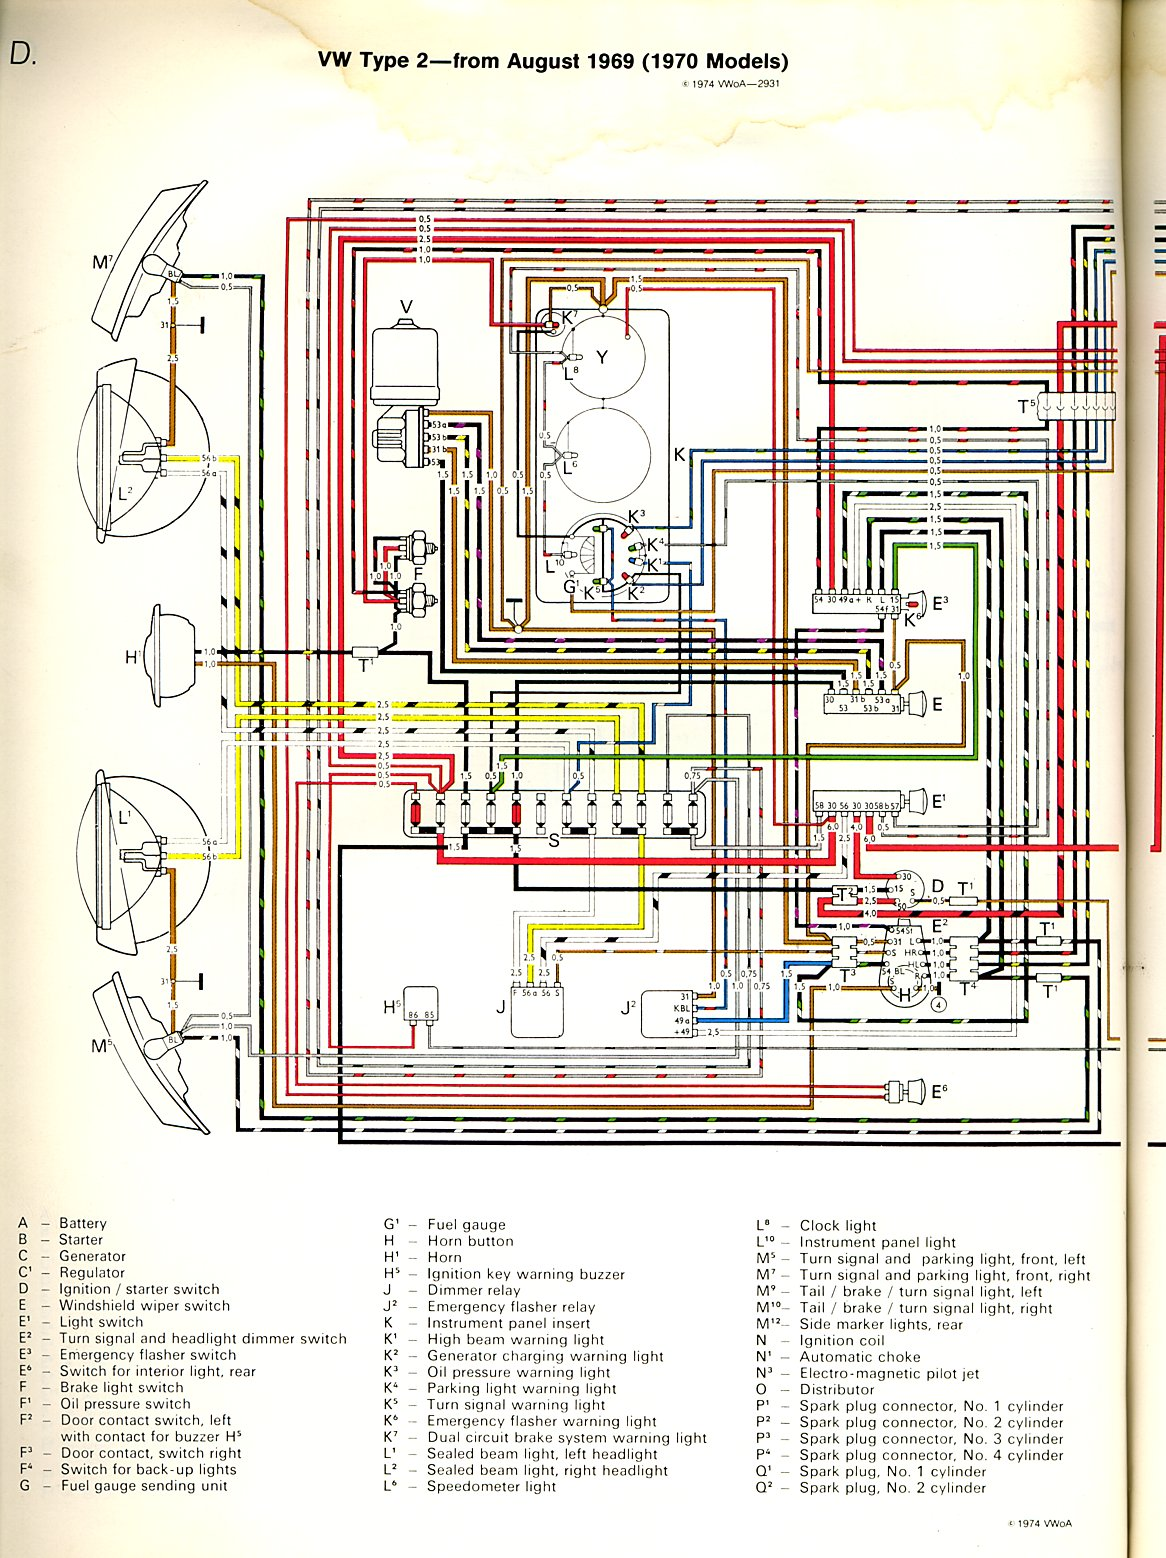 baybus_70a thesamba com type 2 wiring diagrams vw t4 fuse box wiring diagram at alyssarenee.co